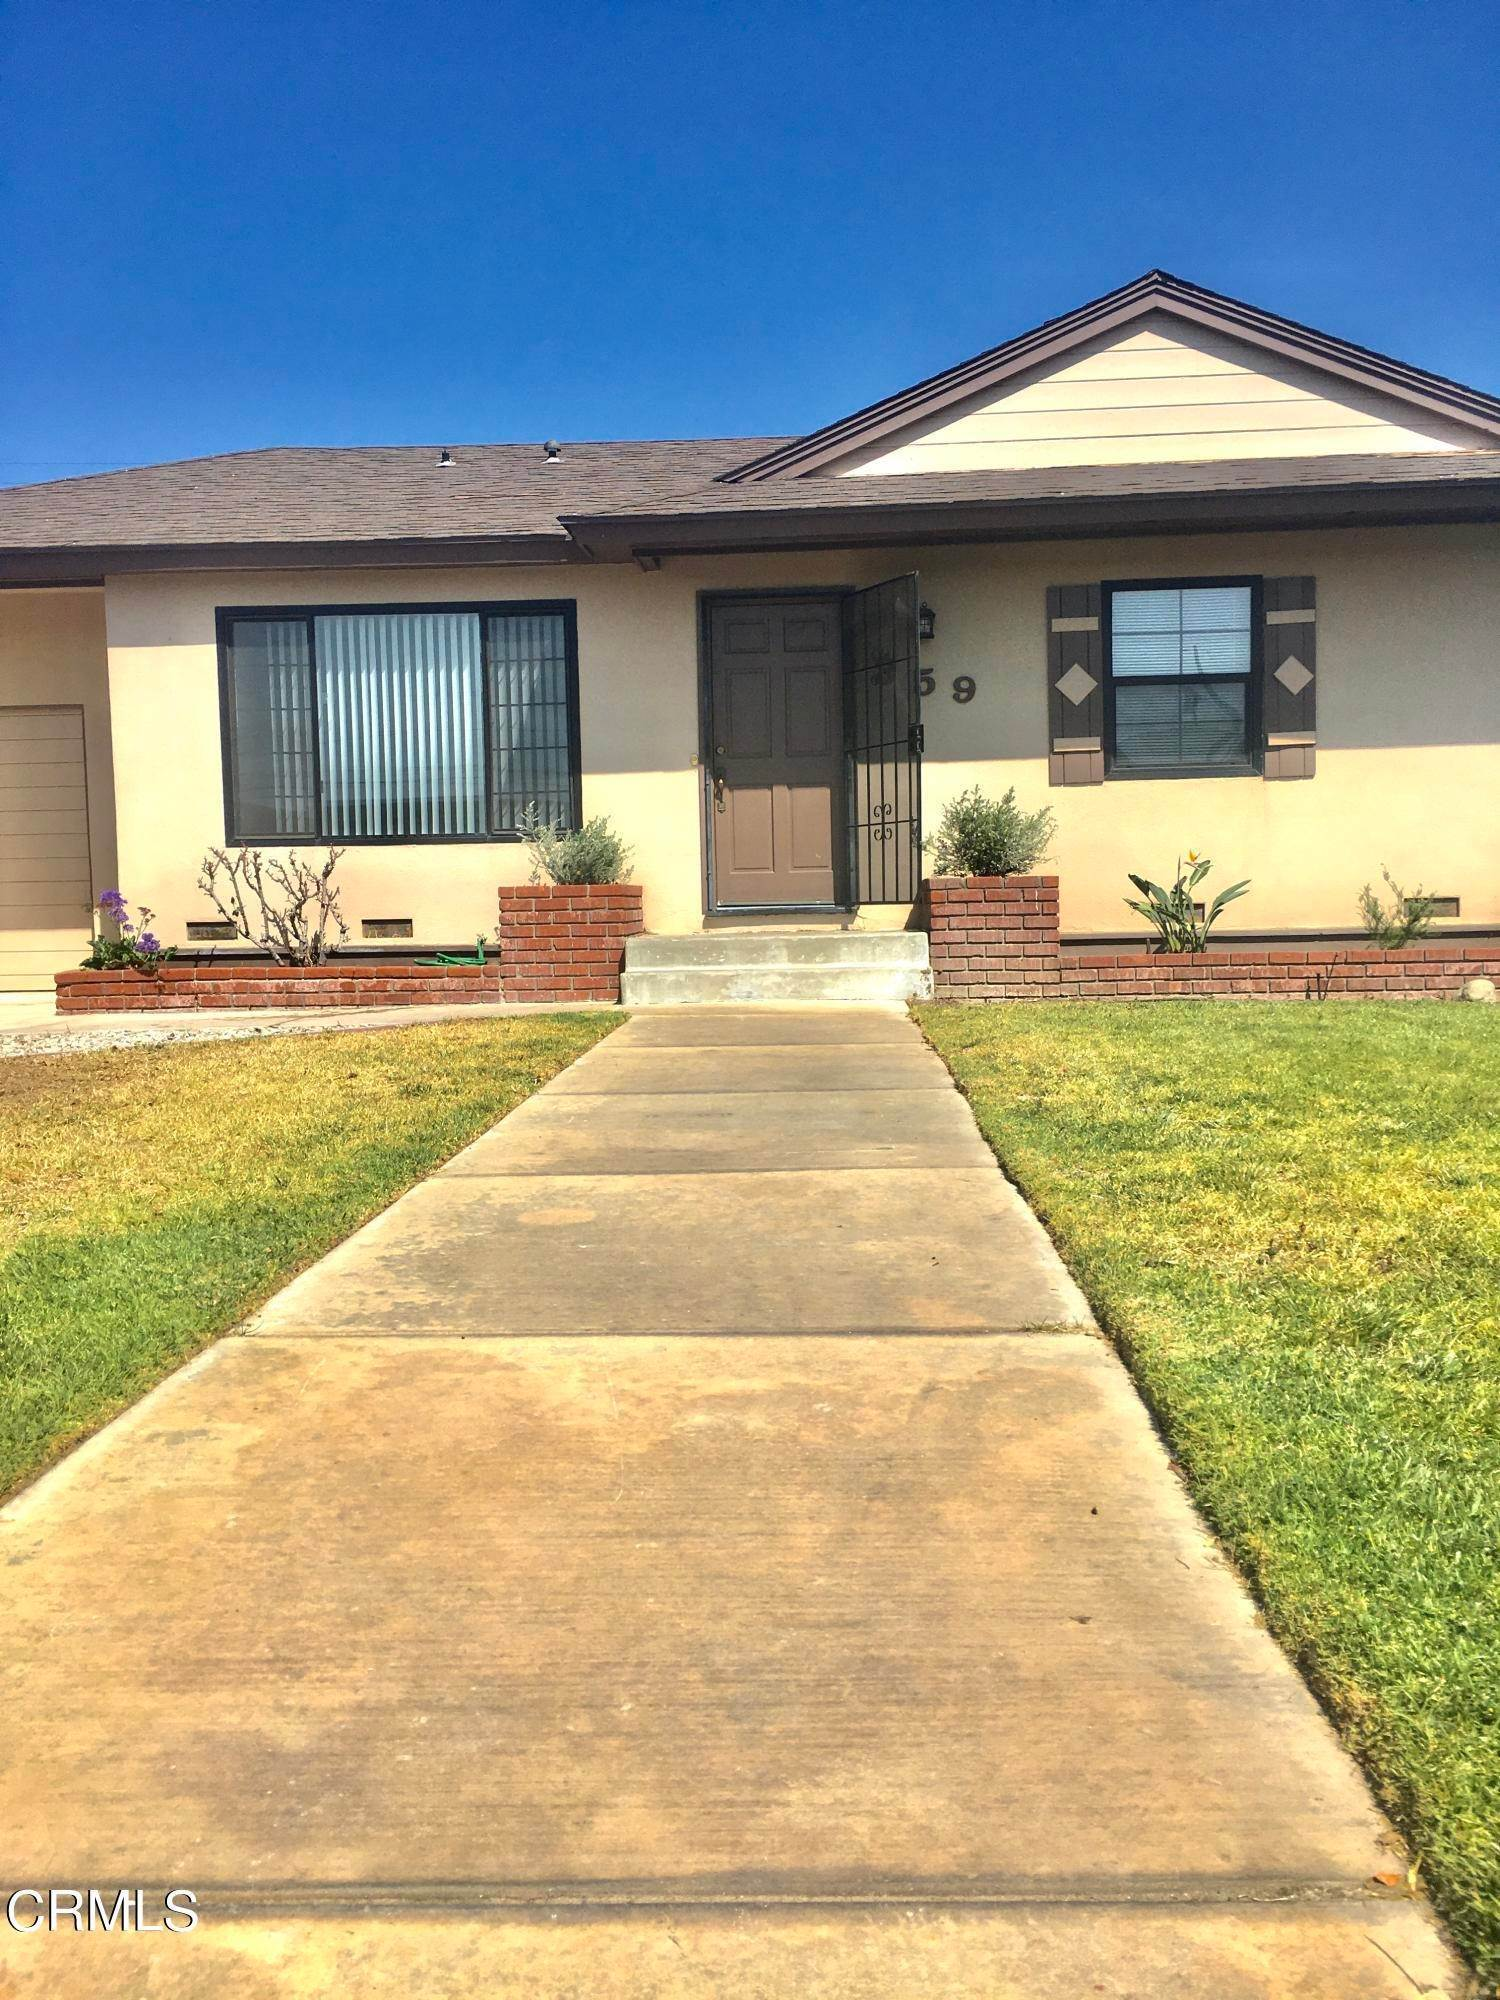 2. Single Family Homes for Sale at 359 Occidental Drive Oxnard, California 93036 United States